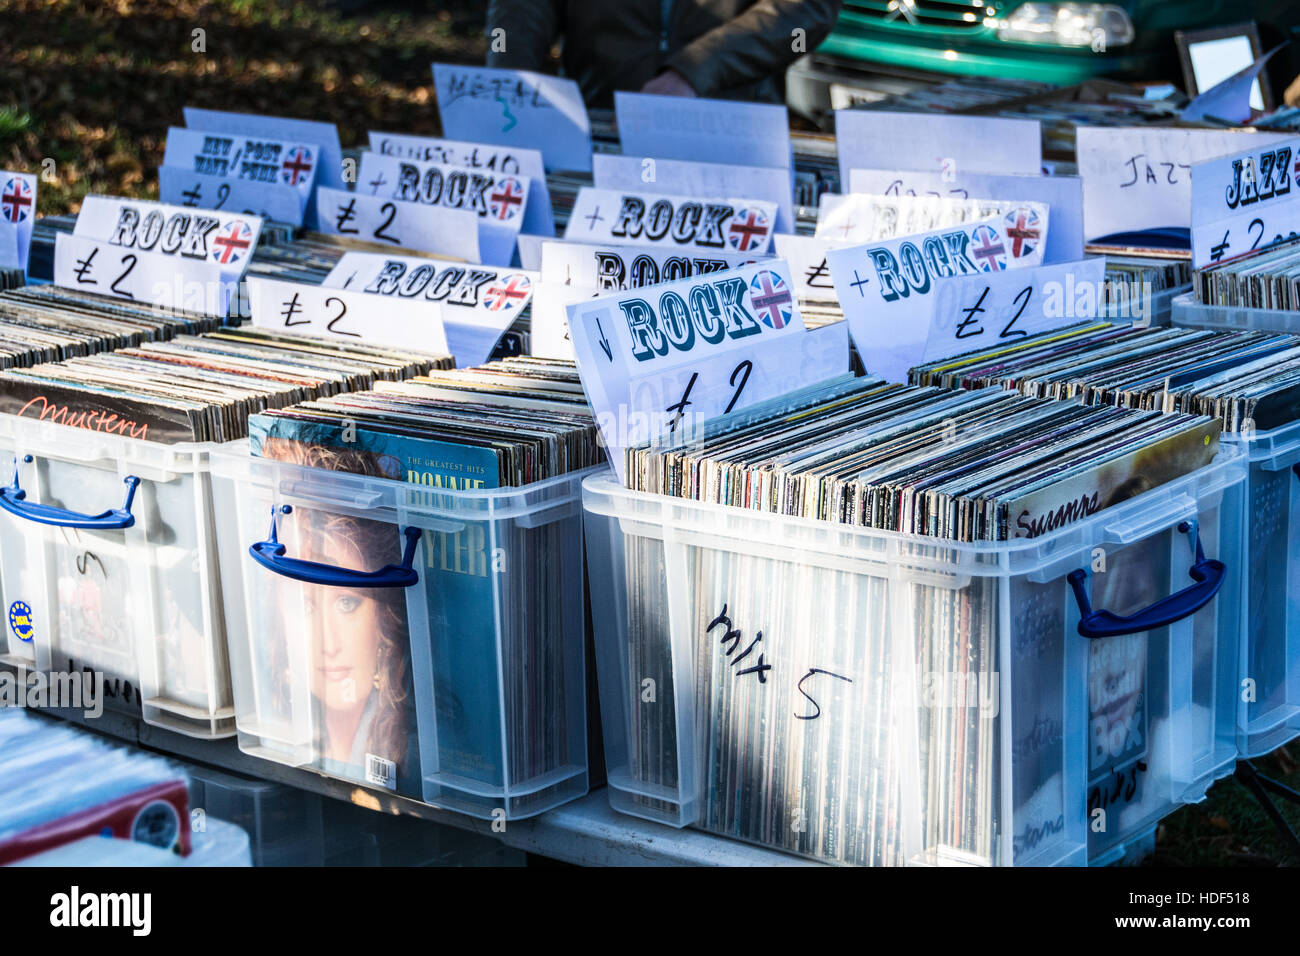 Old vinyl LP records on sale at a car boot sale in London, England, UK - Stock Image